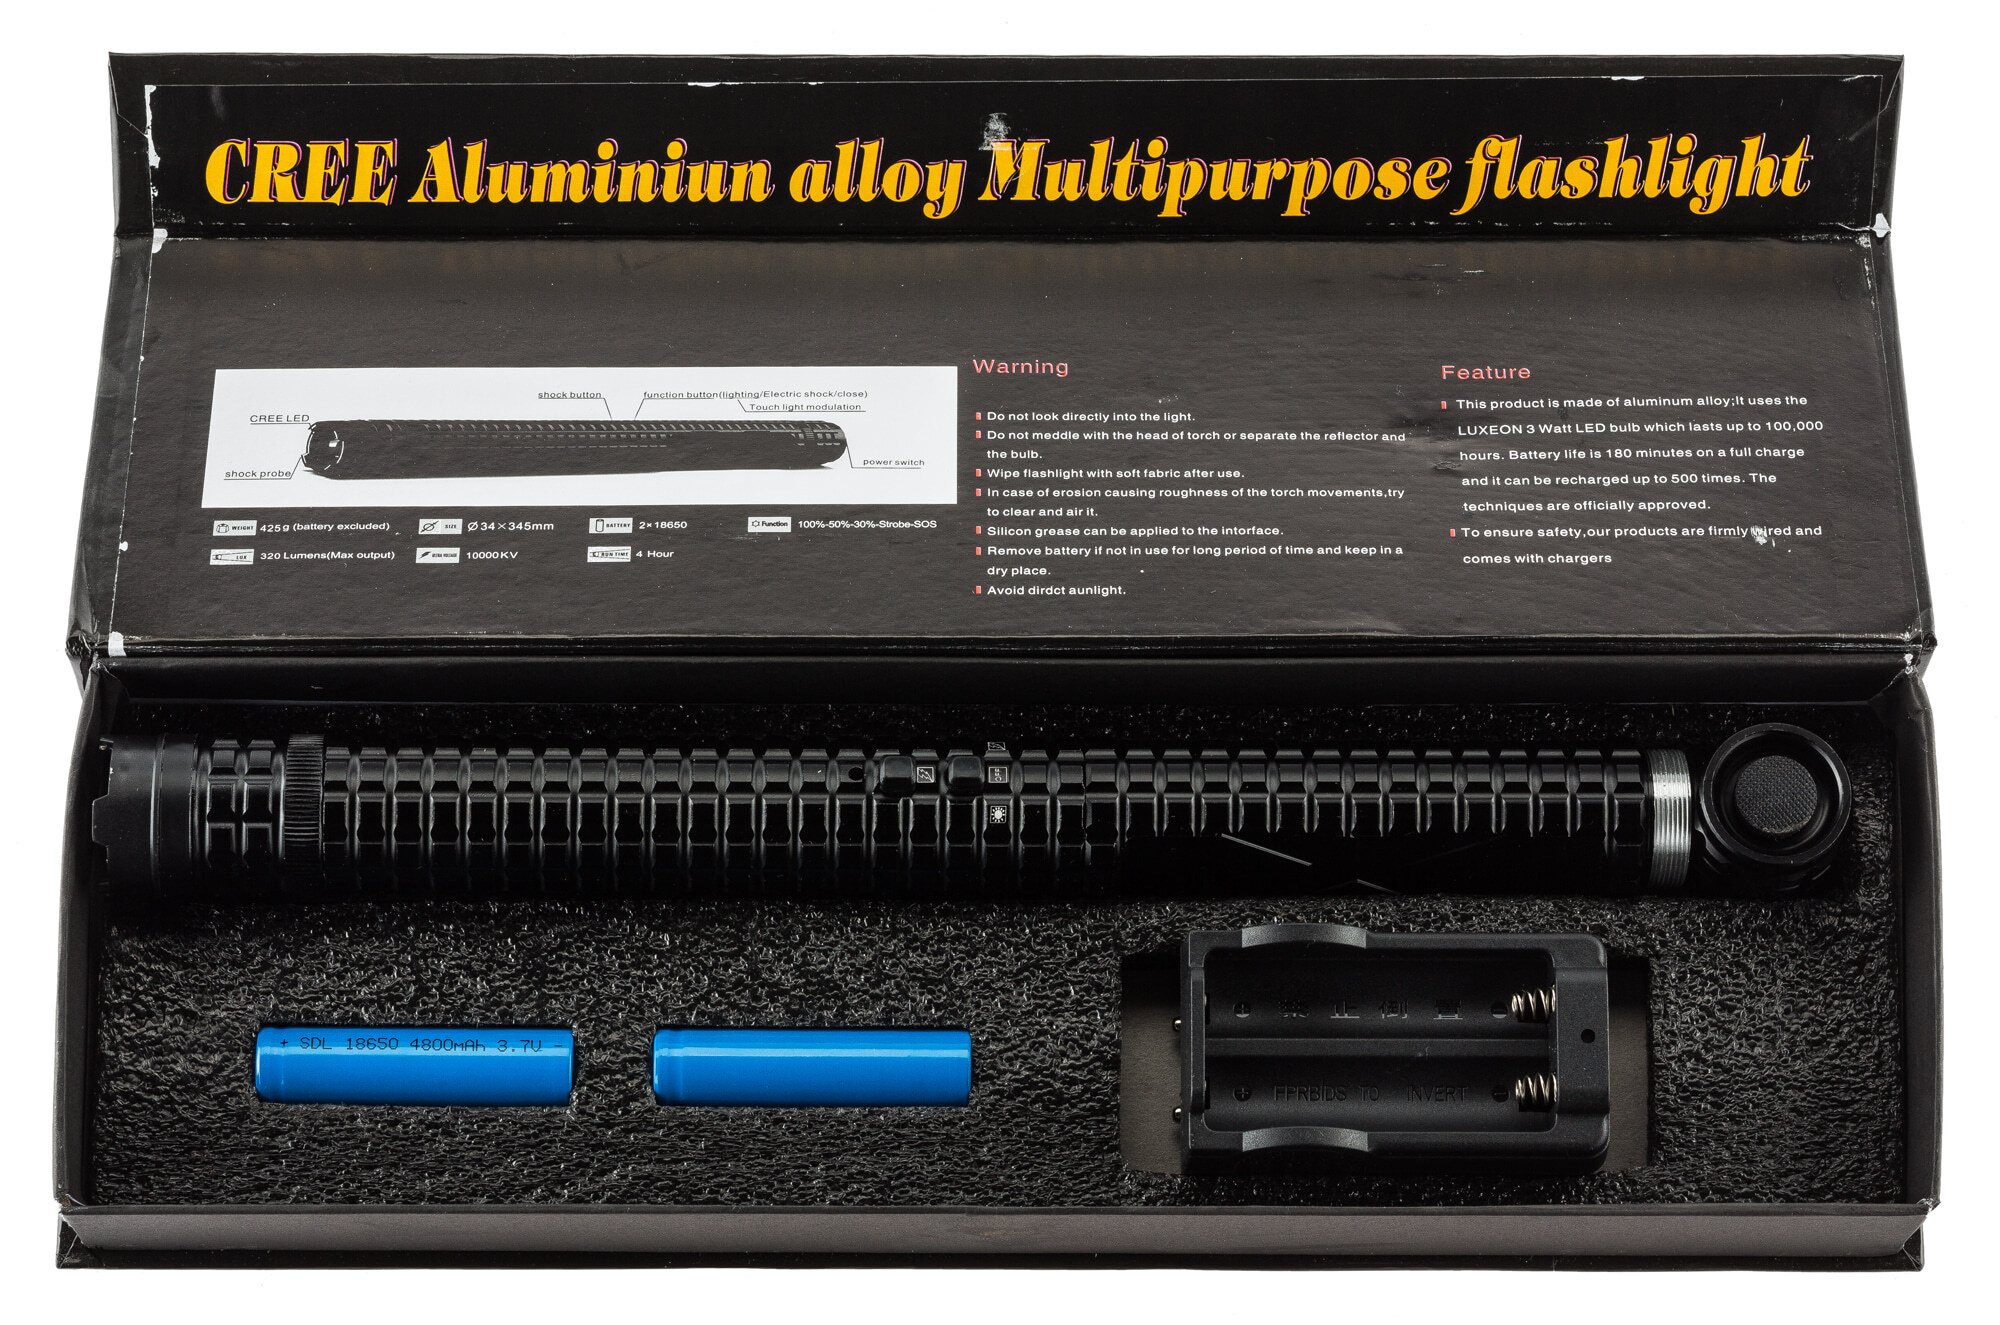 AD737-3-Duplica Matraque shocker 10 000 000  volts - AD737